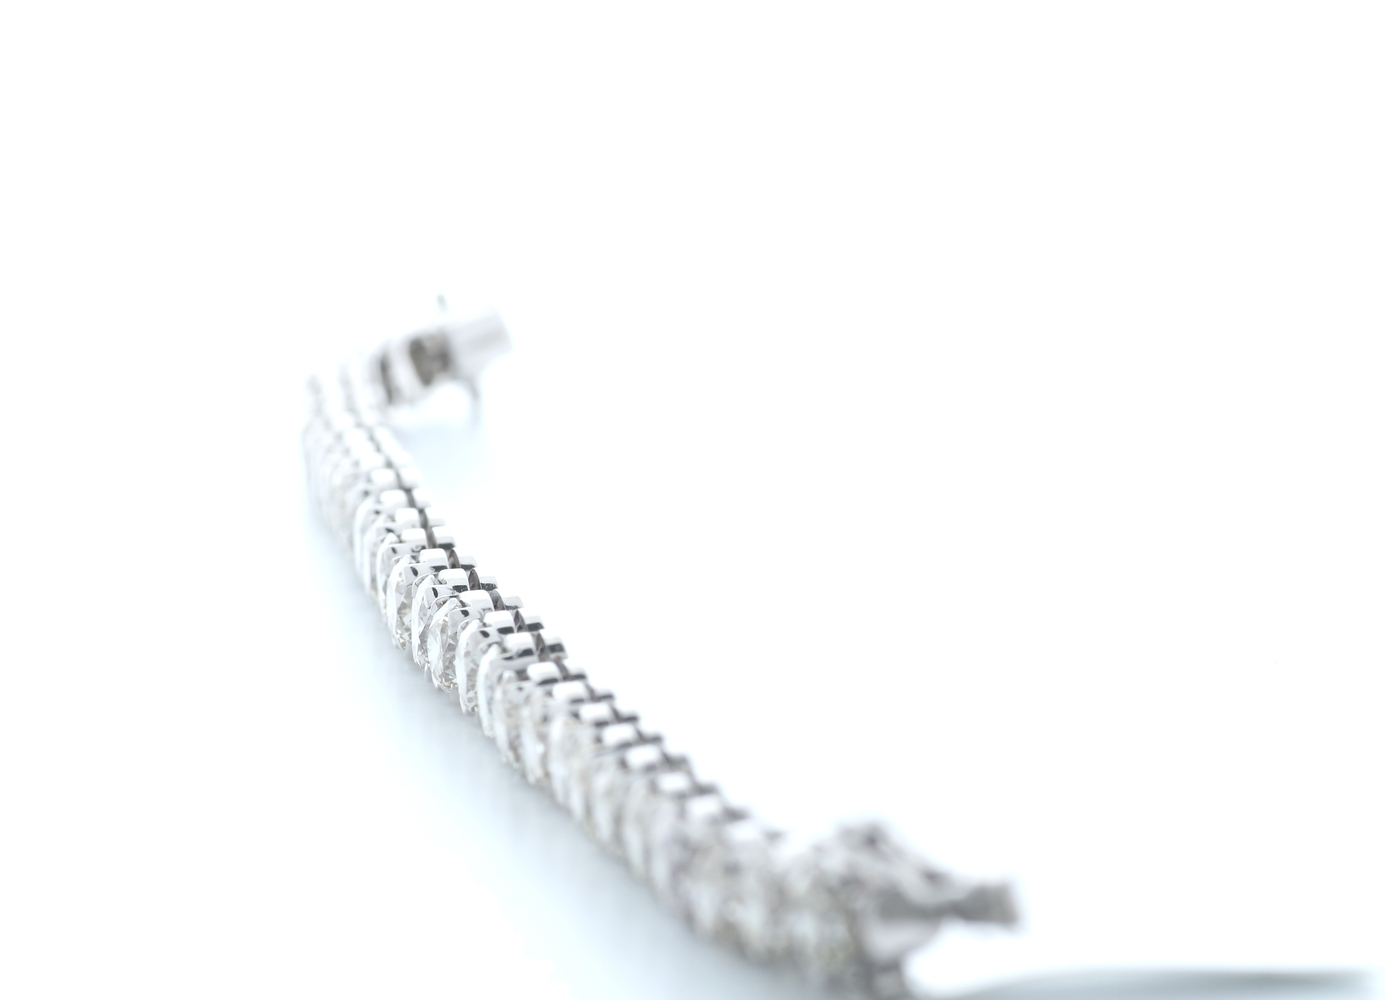 18ct White Gold Claw Set Diamond Tennis Bracelet 23.02 Carats - Image 2 of 4